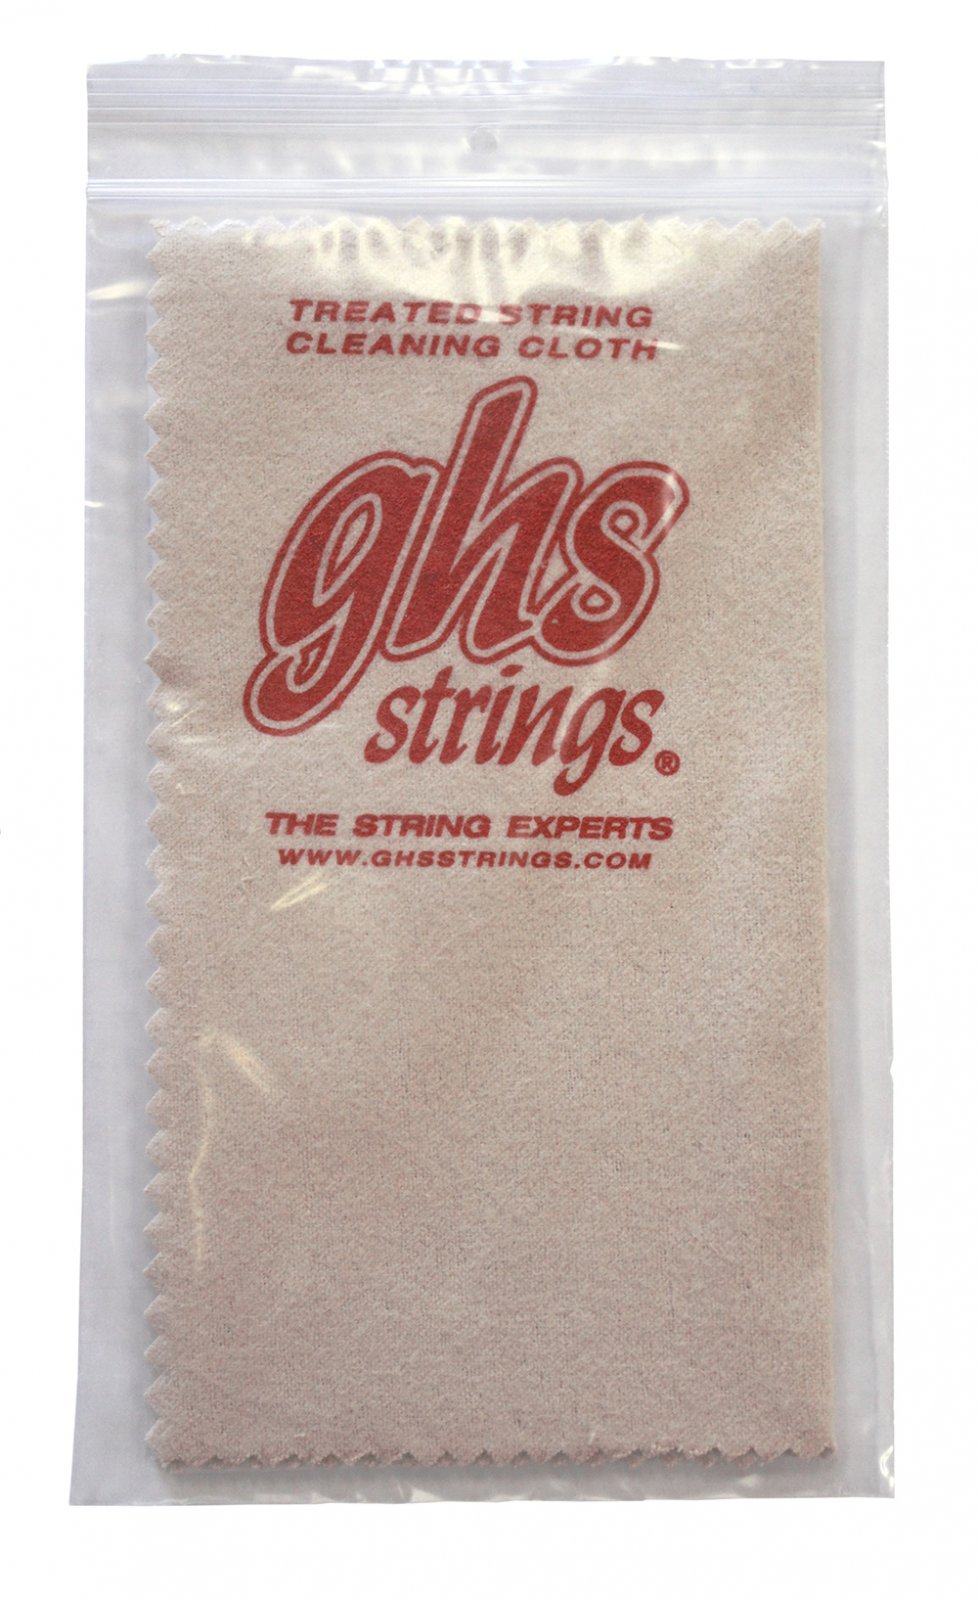 GHS Treated String Cleaning Cloth (A8)